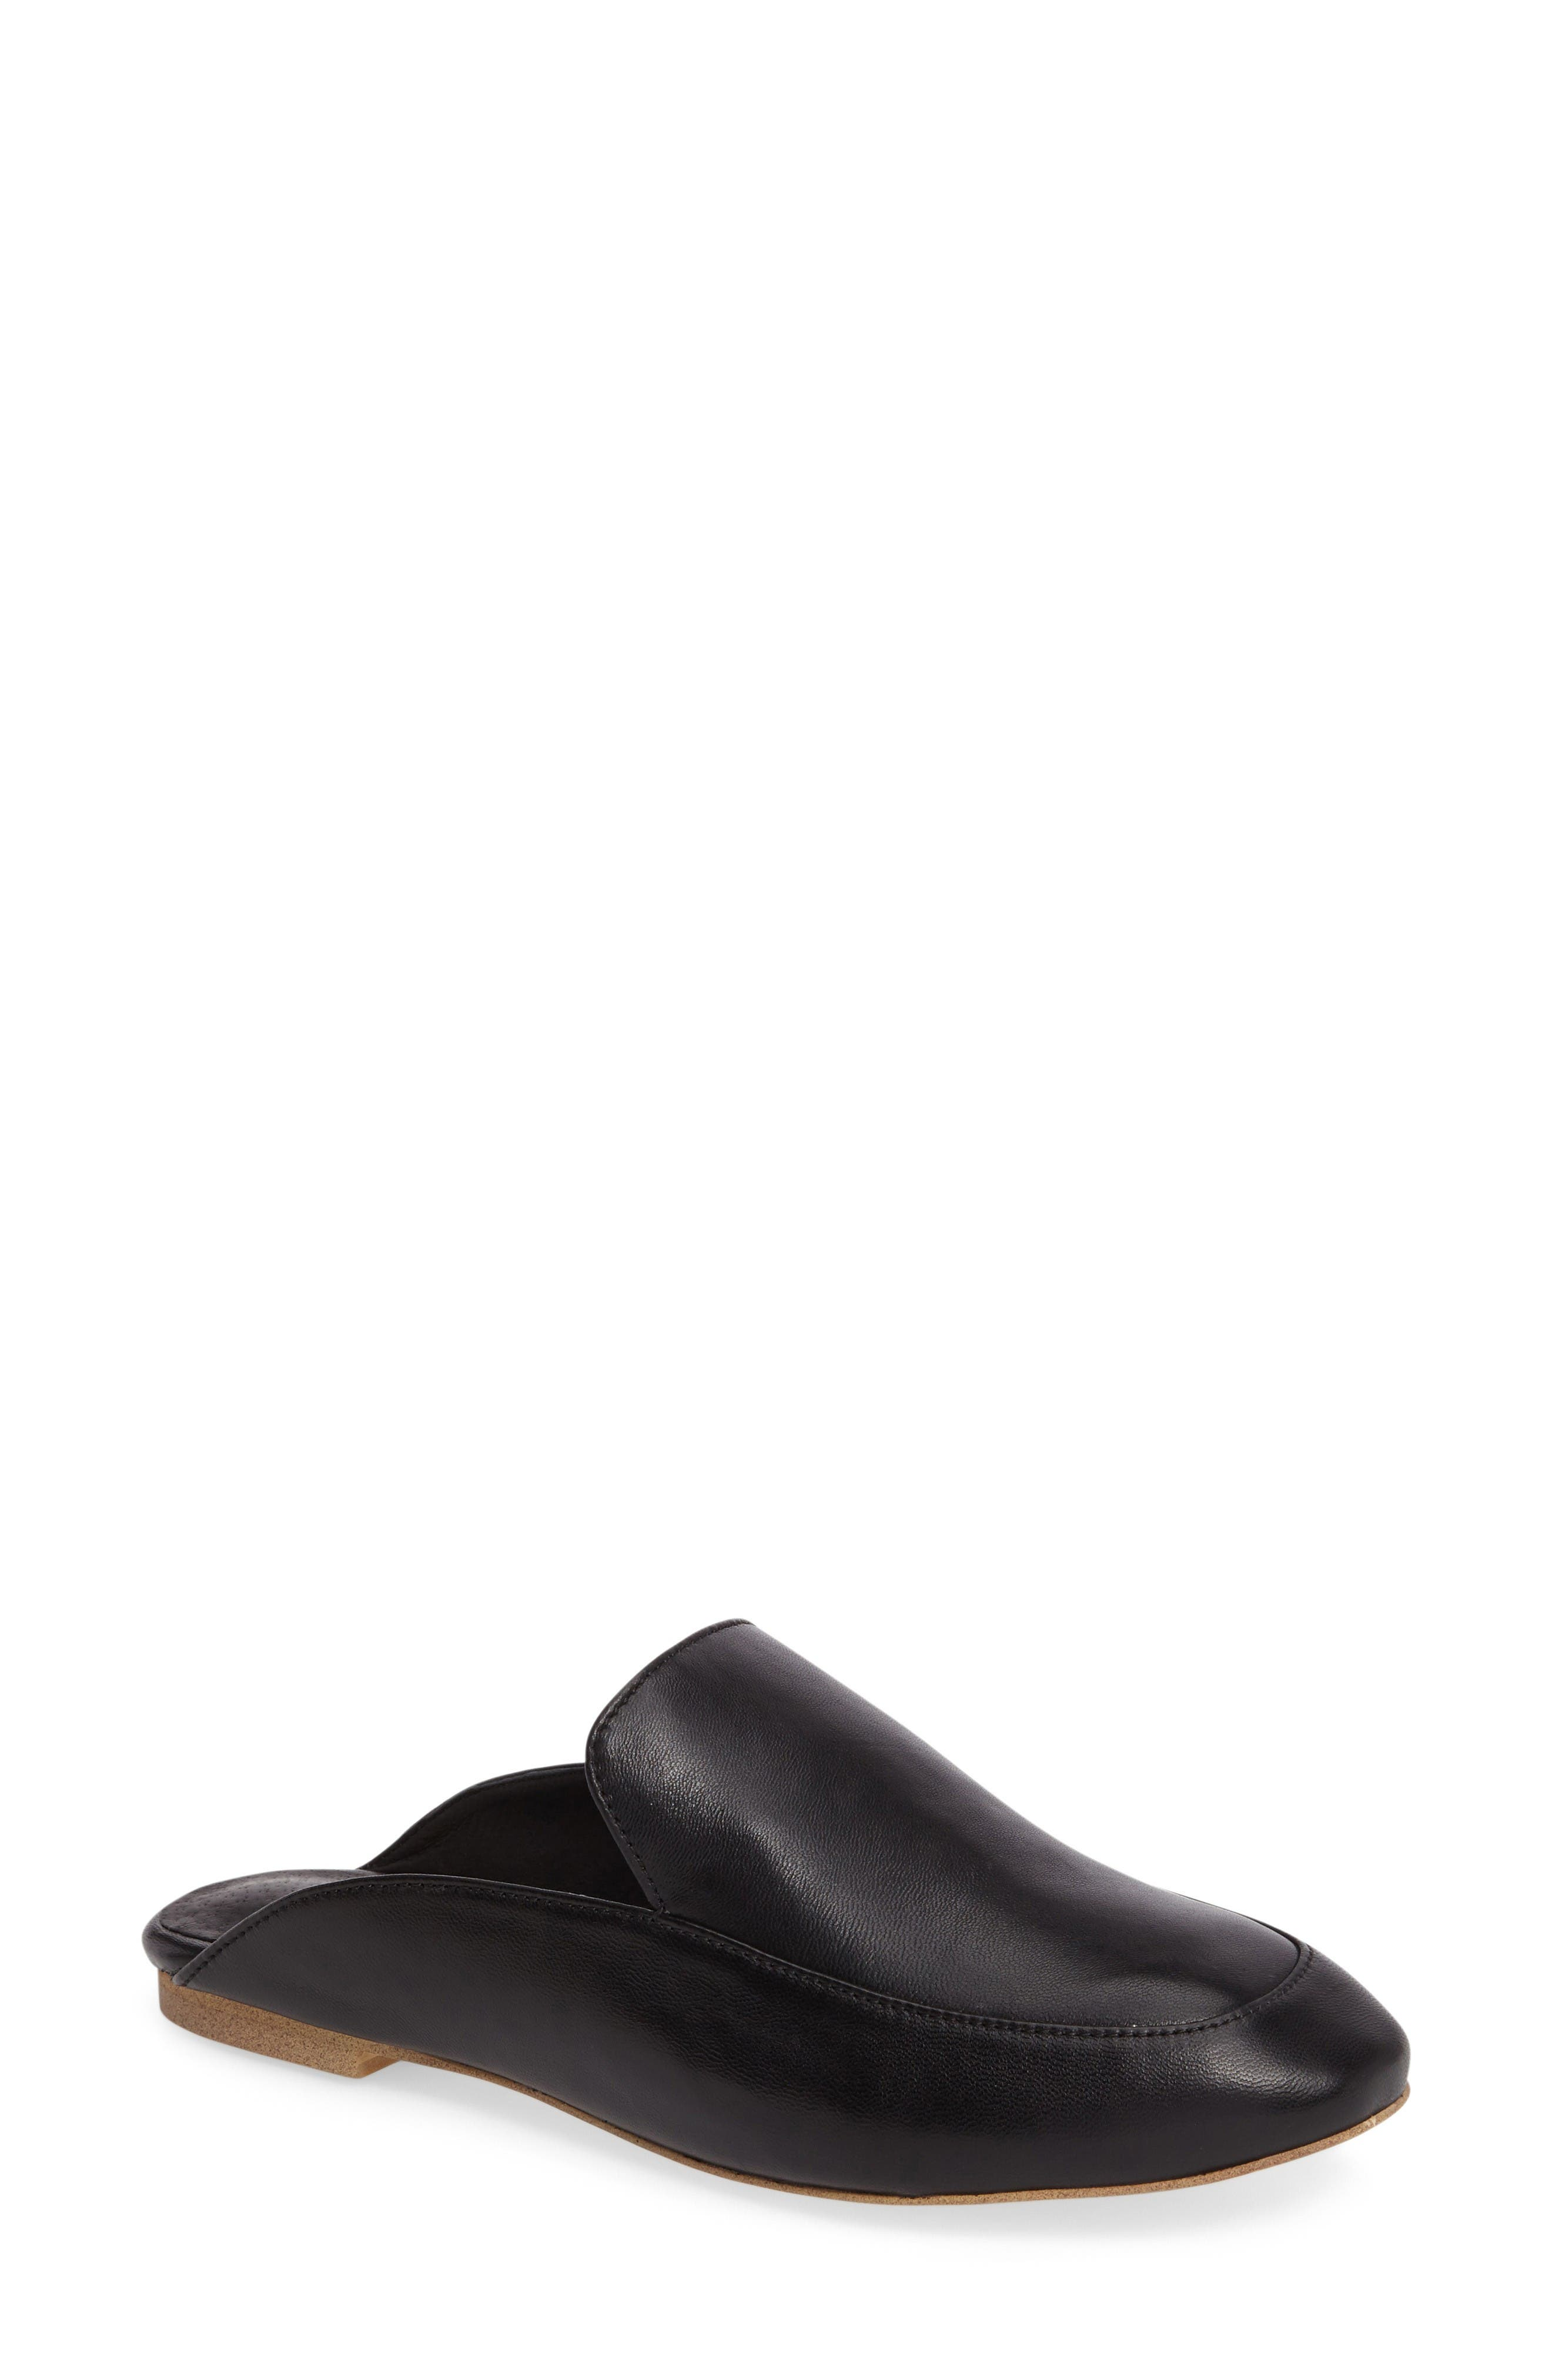 JEFFREY CAMPBELL Worthy Loafer Mule